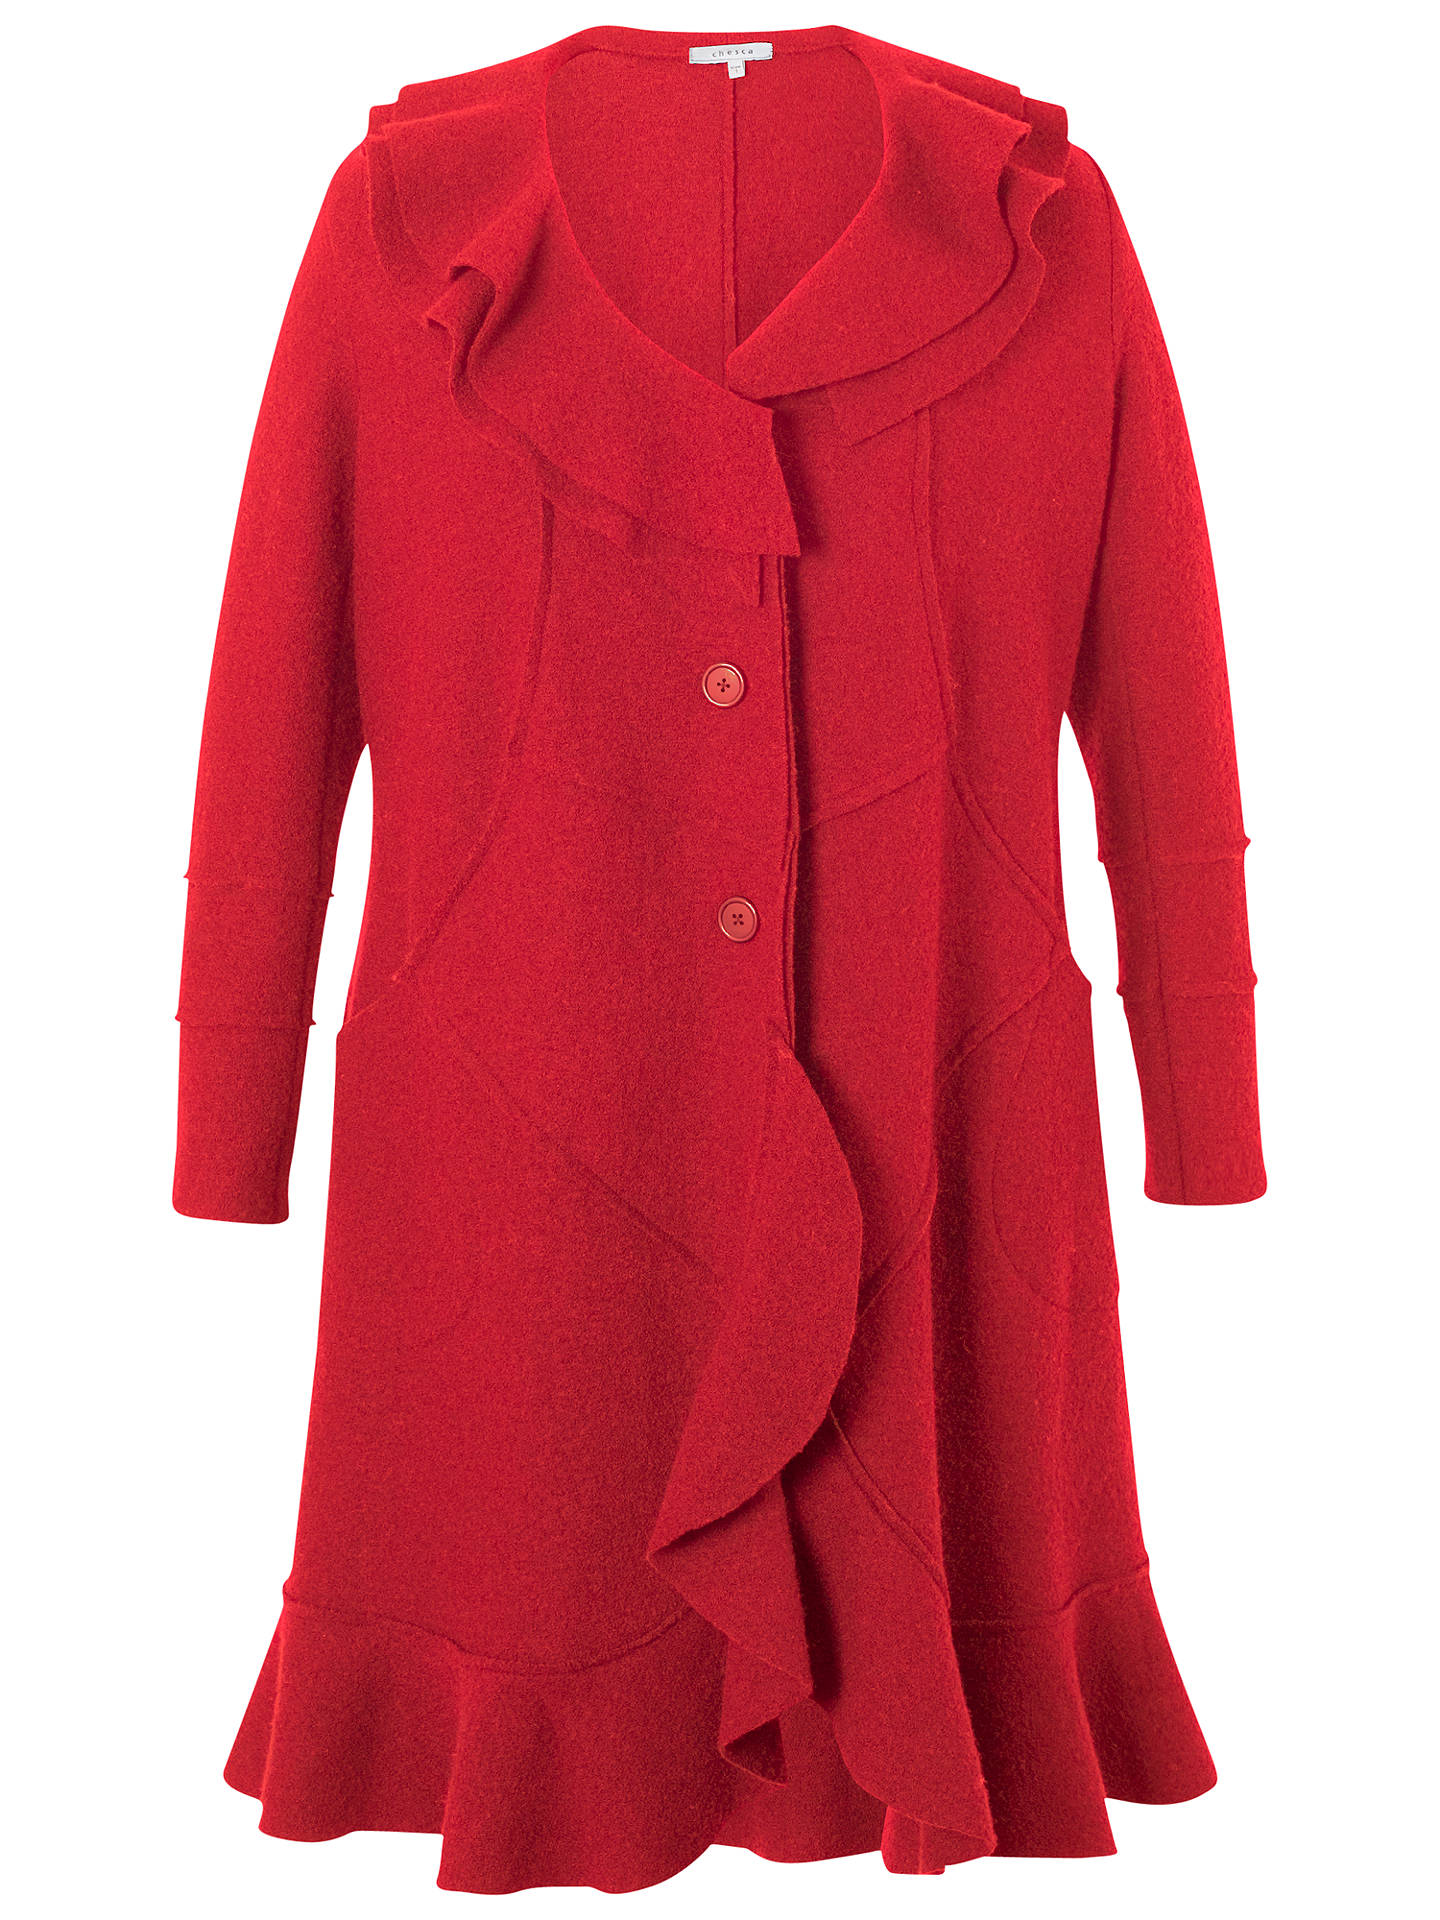 Buy Chesca Flounce Trim Wool Coat, Red, 12-14 Online at johnlewis.com